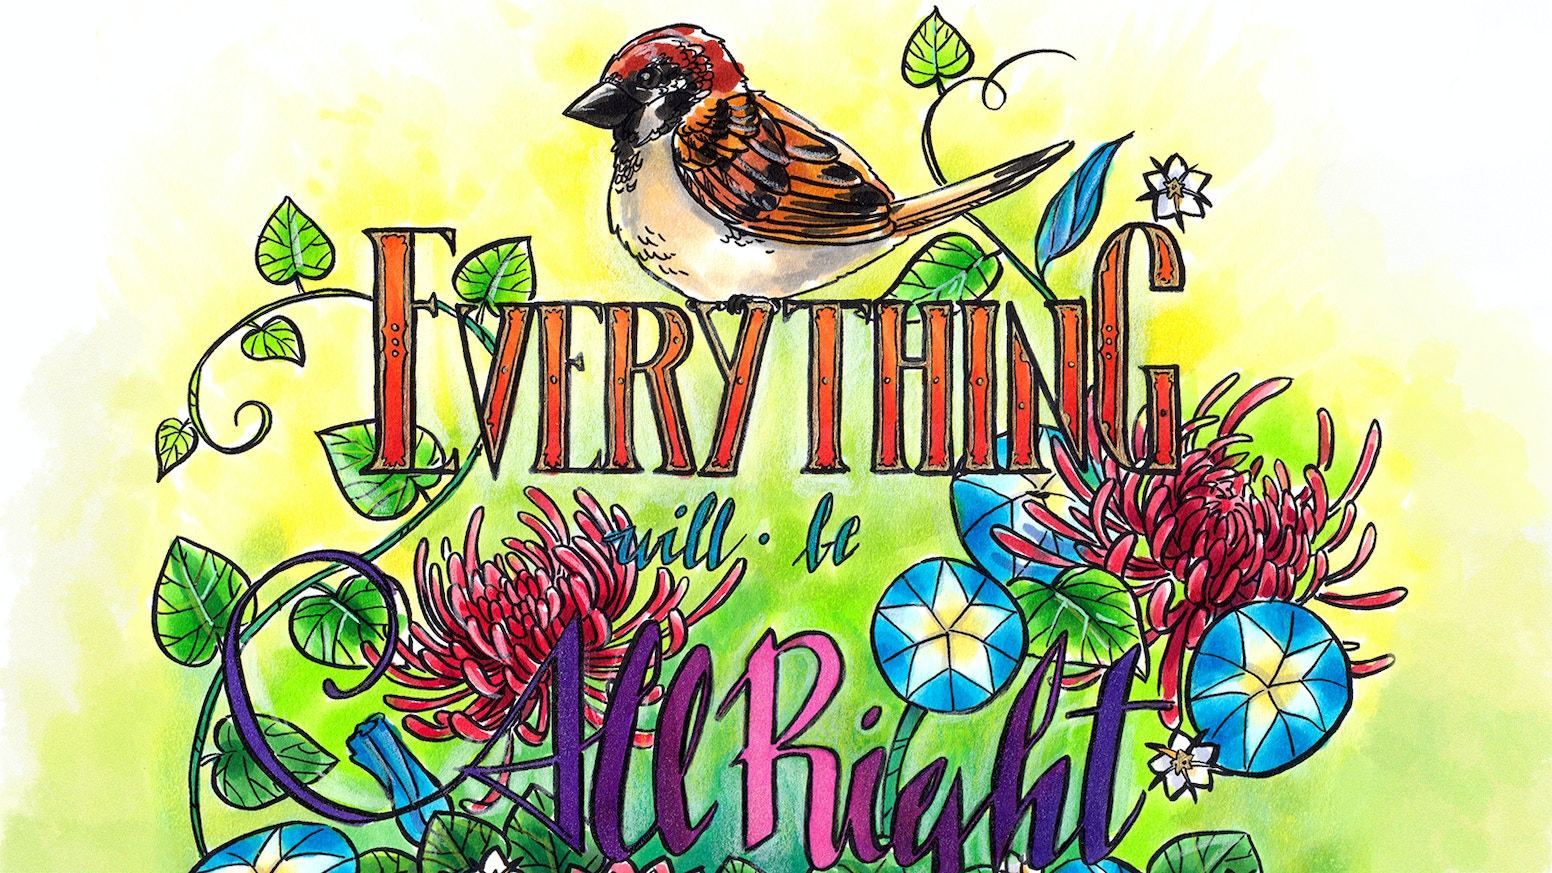 everything will be all right a fantasy coloring book - Fantasy Coloring Book